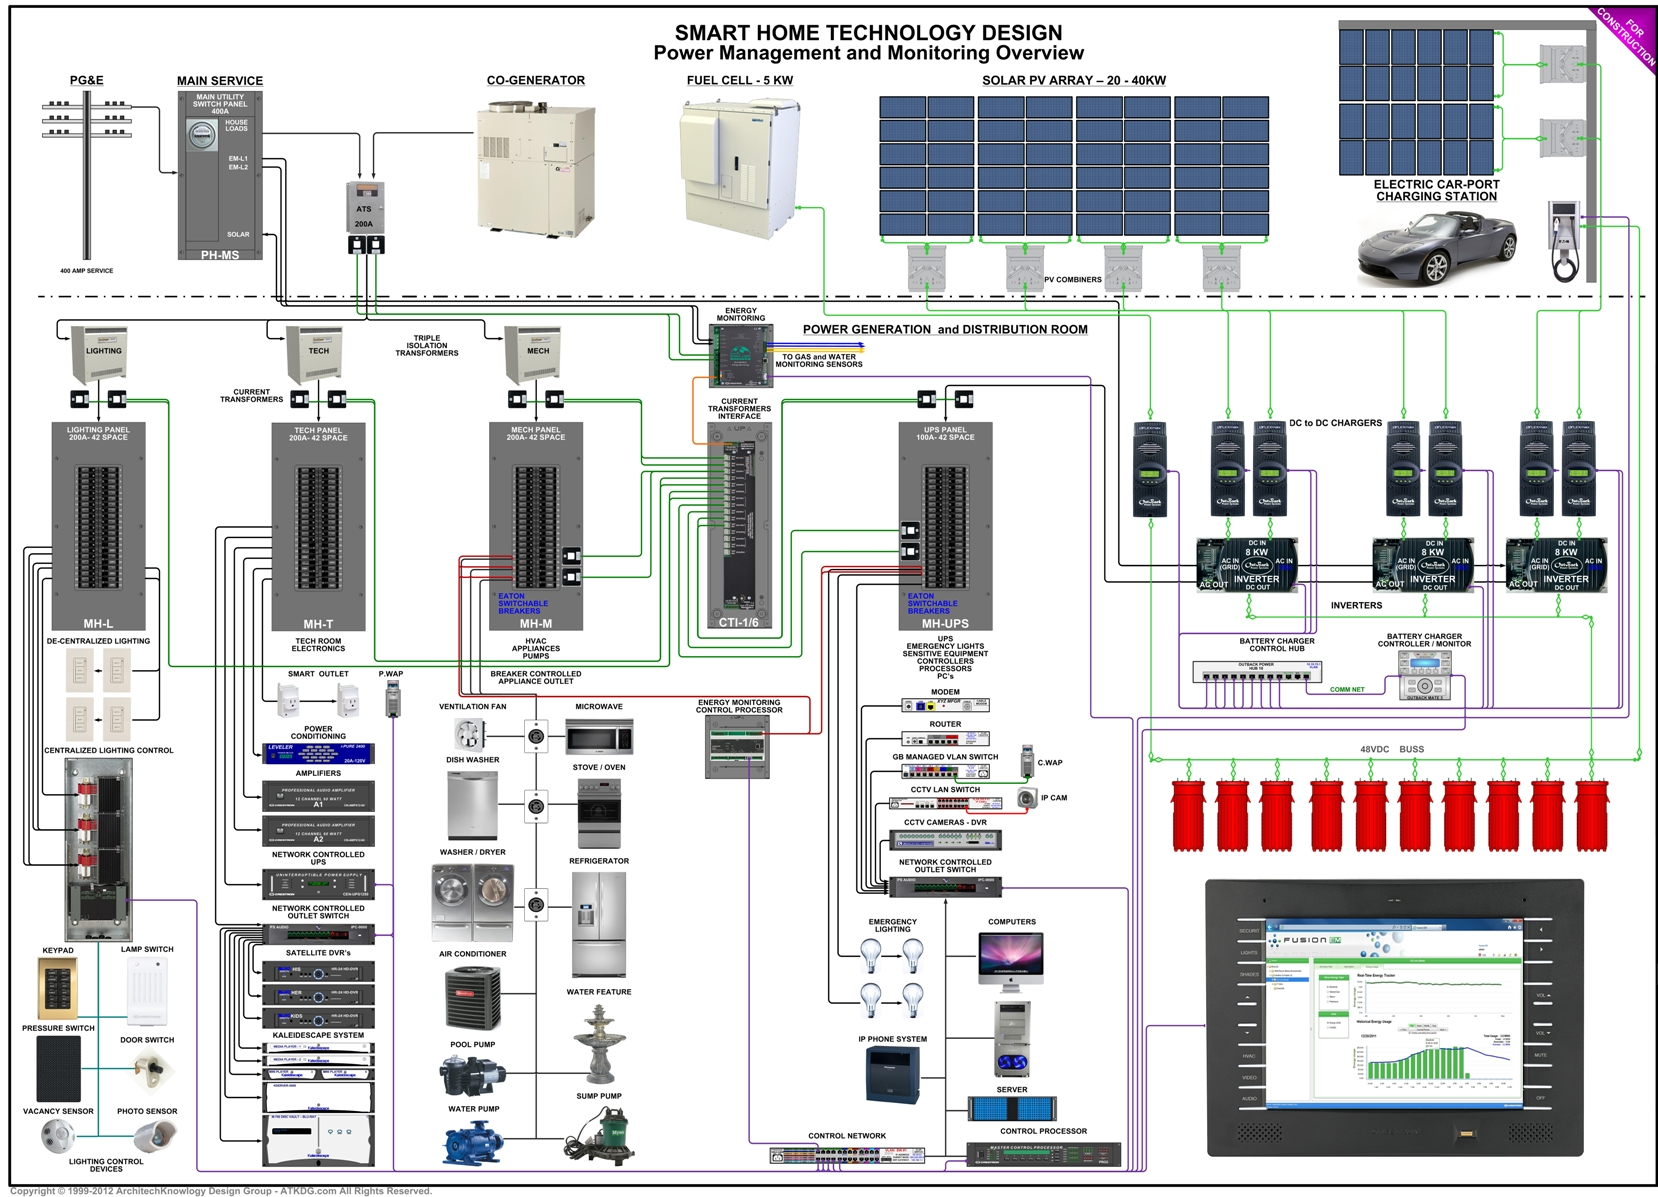 crestron lighting control wiring diagram Collection-Crestron Wiring Diagram Best Famous Home Automation Wiring Diagram Electrical System 7-t